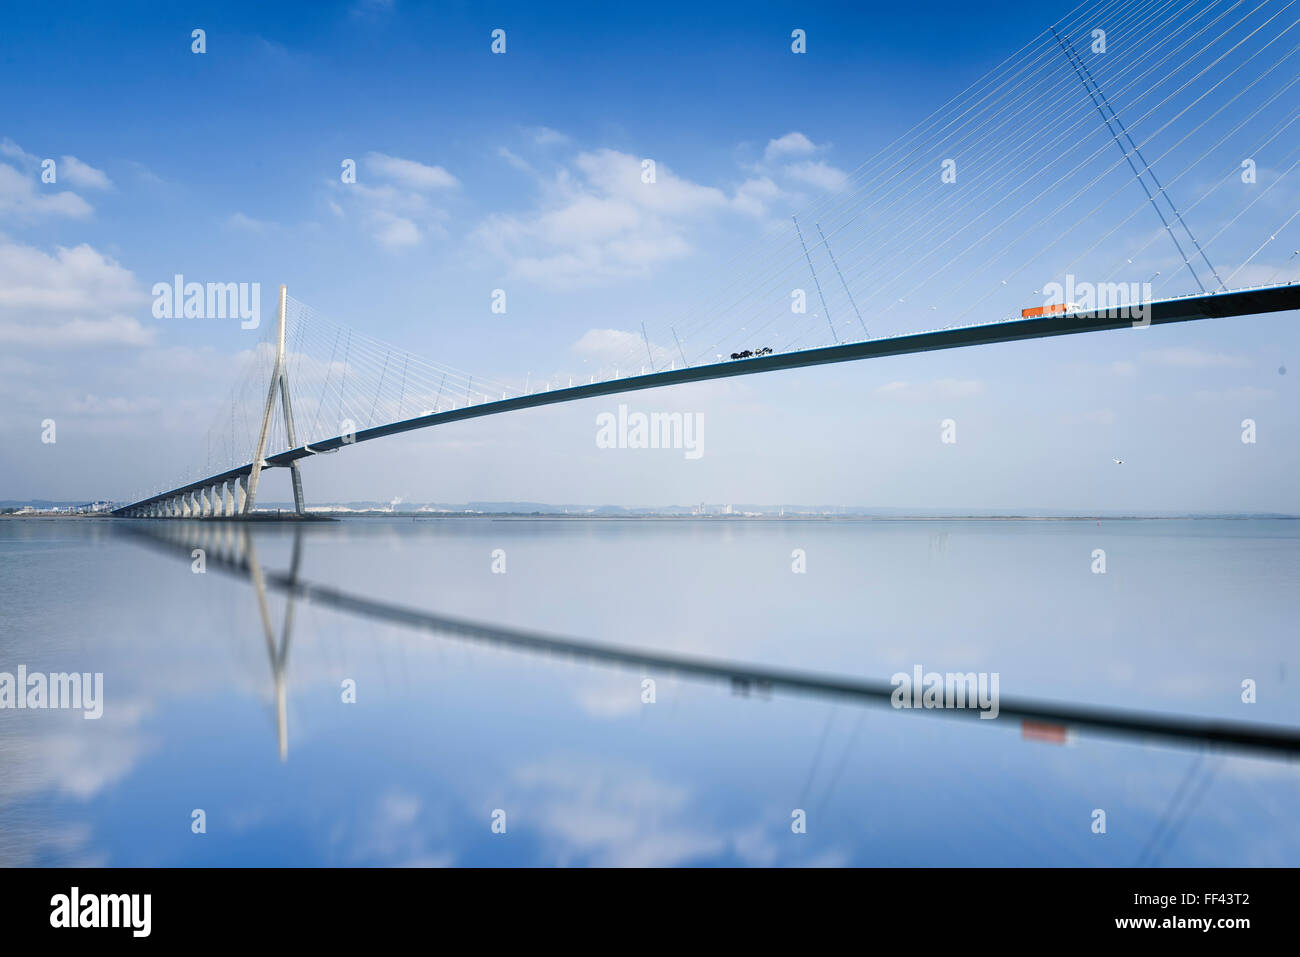 pillar of the bridge 'Pont de Normandie' reflected in the Seine river at Le Havre, France - Stock Image